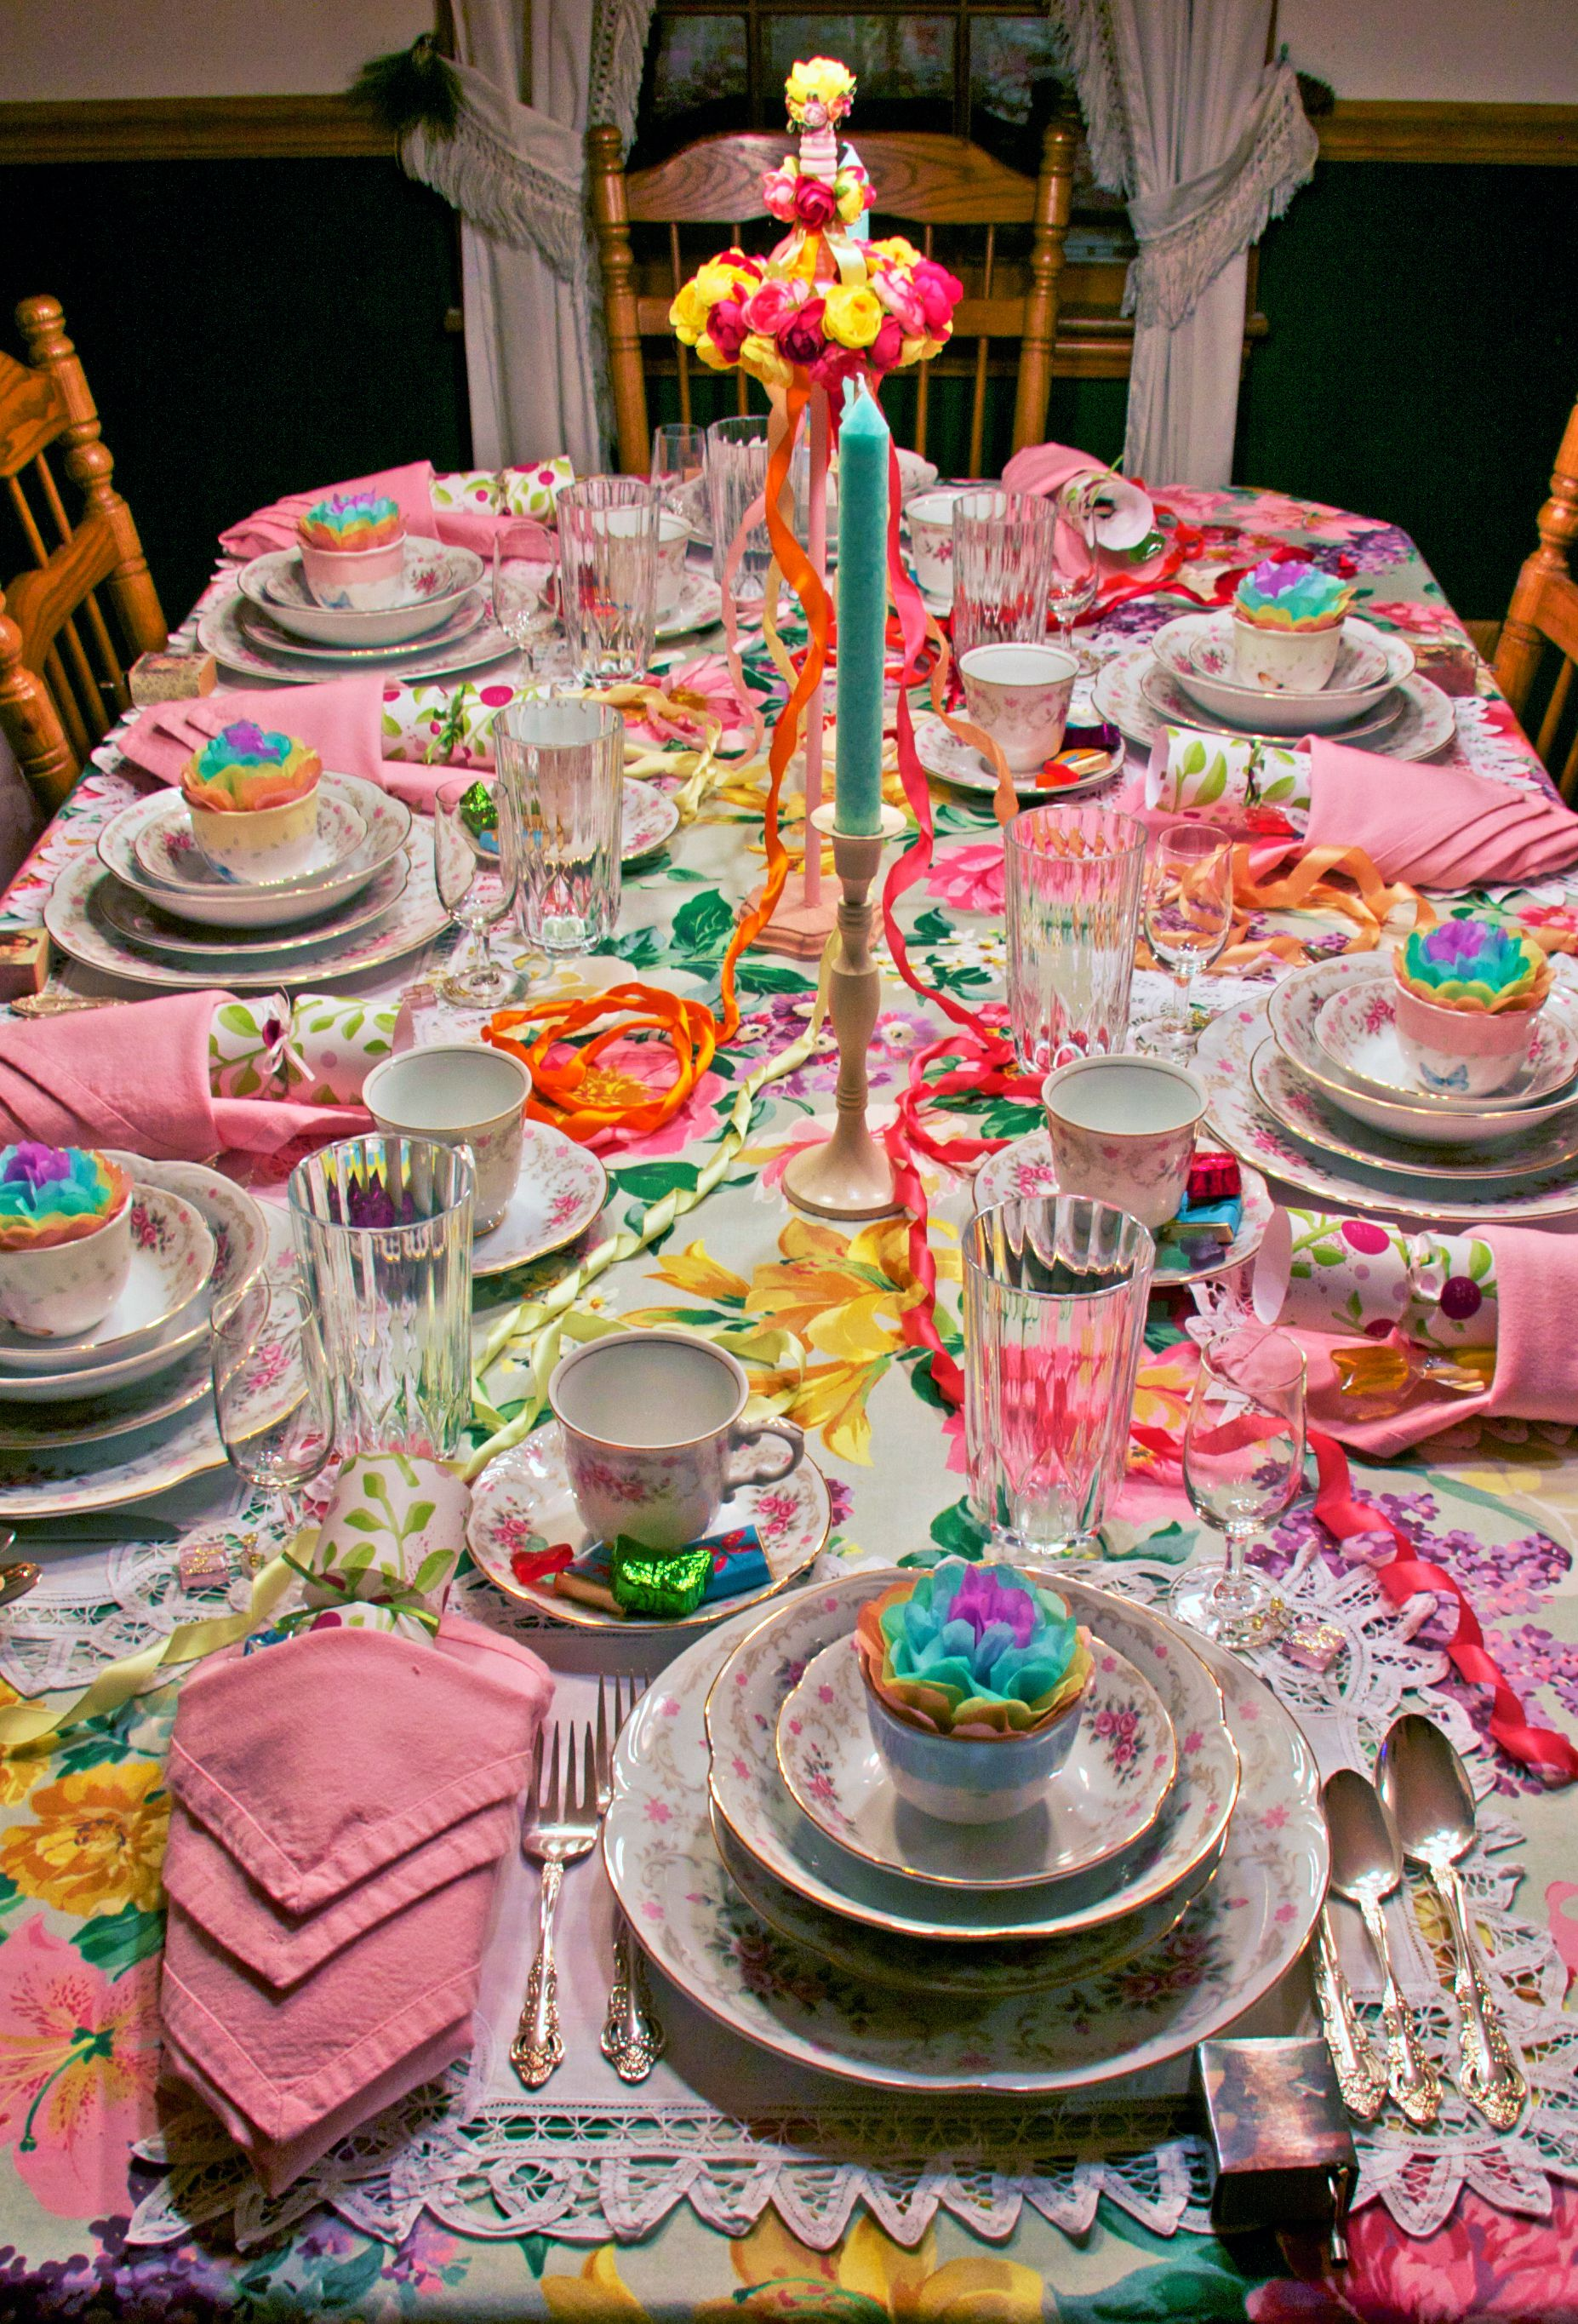 May Dining Table Décor: A Floral Extravaganza! | Tablescapes